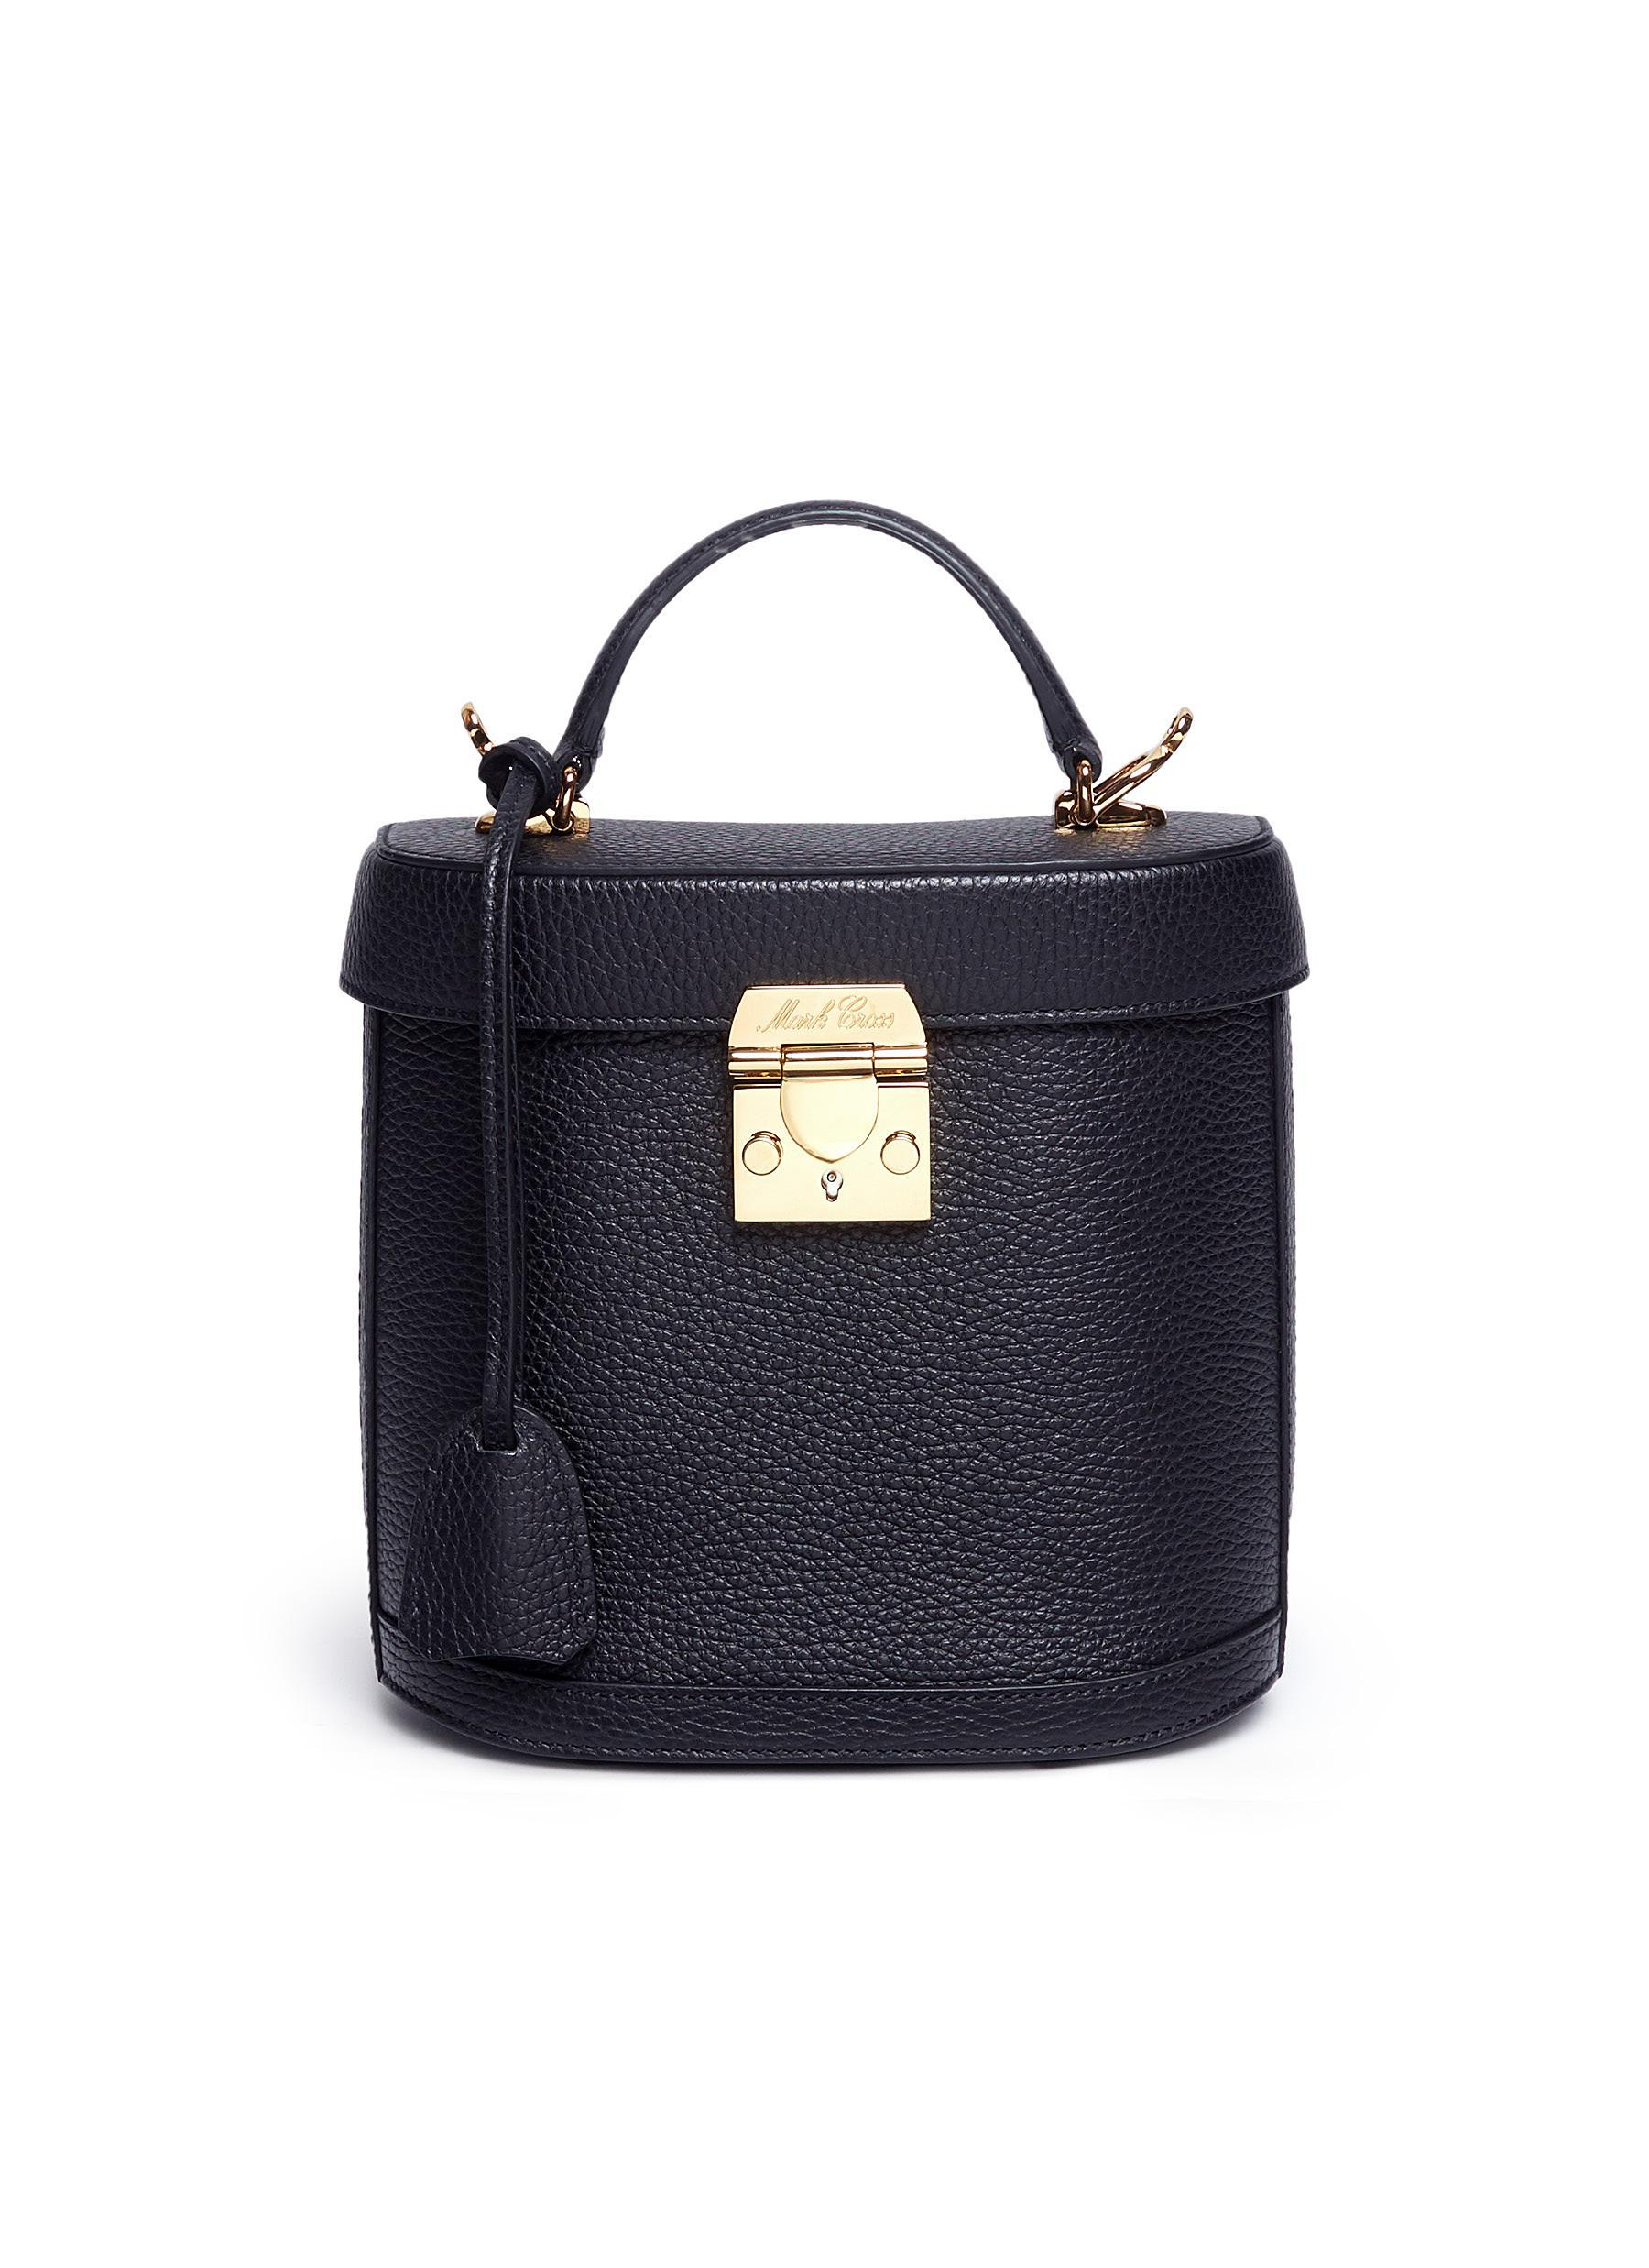 5e0e6b15cf Lyst - Mark Cross Benchley Grained-leather Shoulder Bag in Black ...